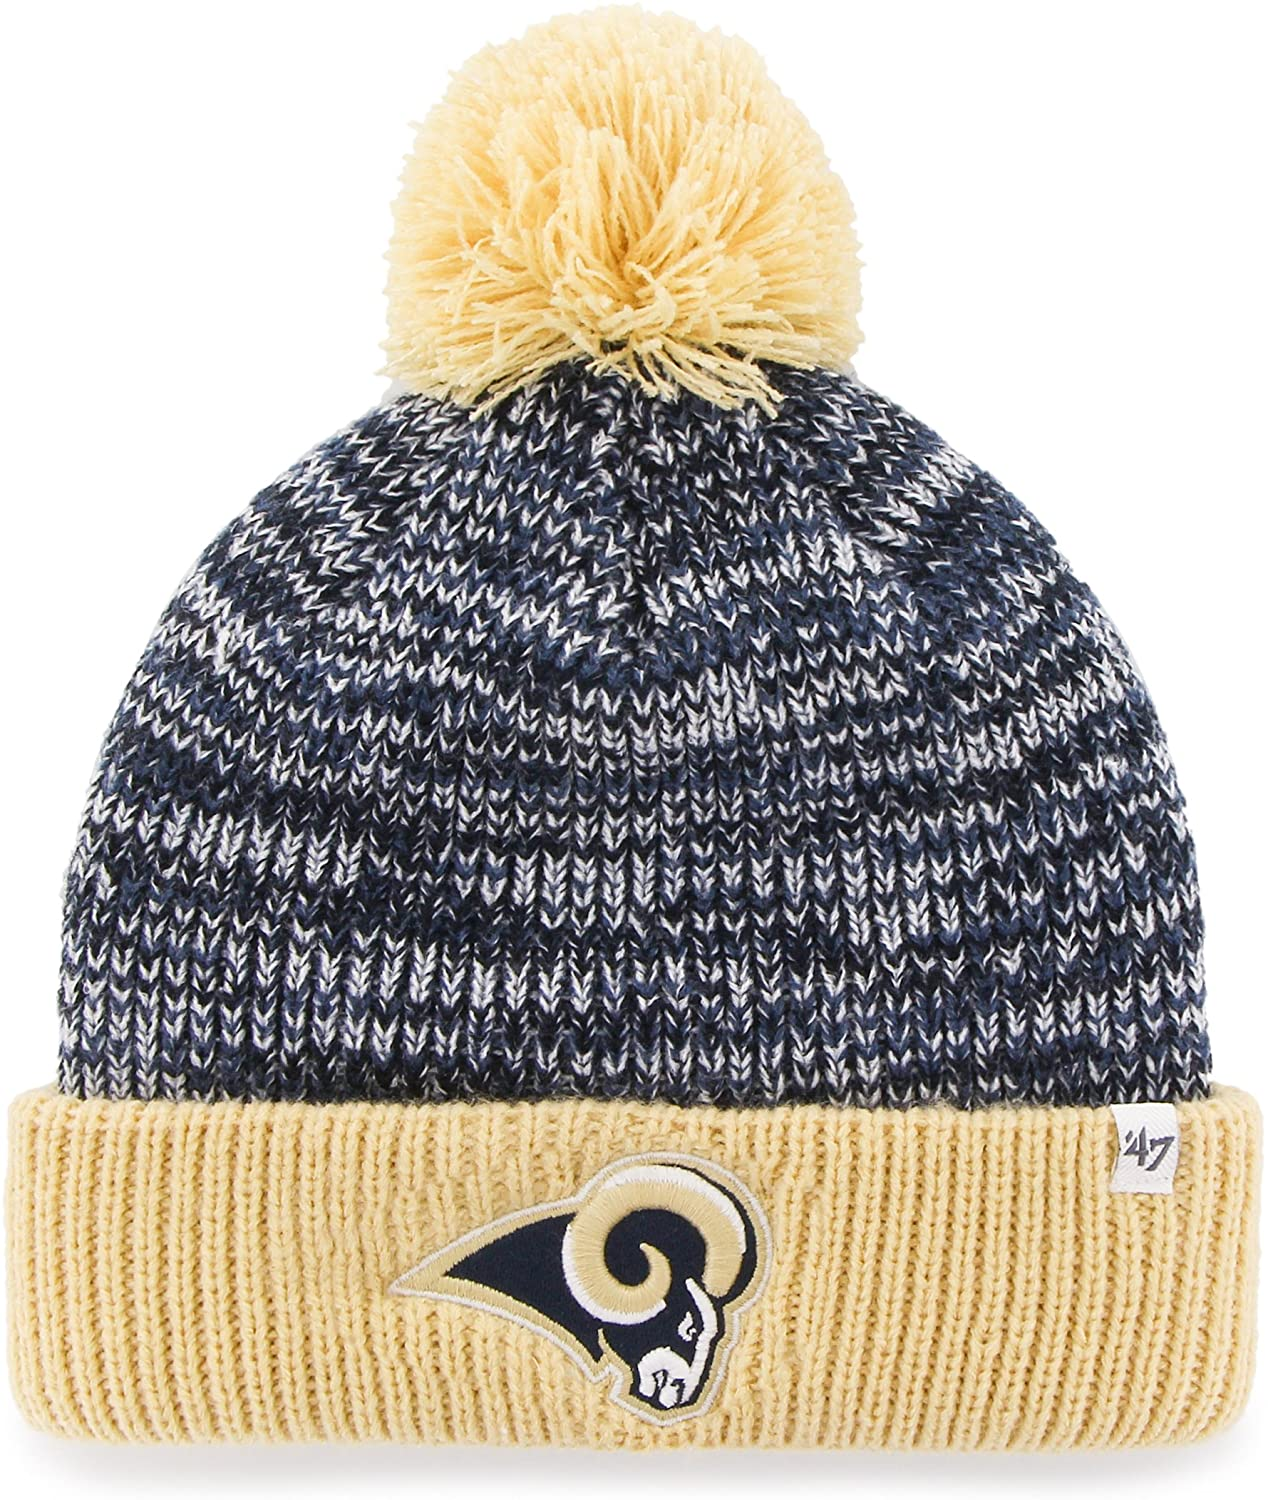 '47 NFL Adult Women's Trytop Cuff Knit Hat with Pom